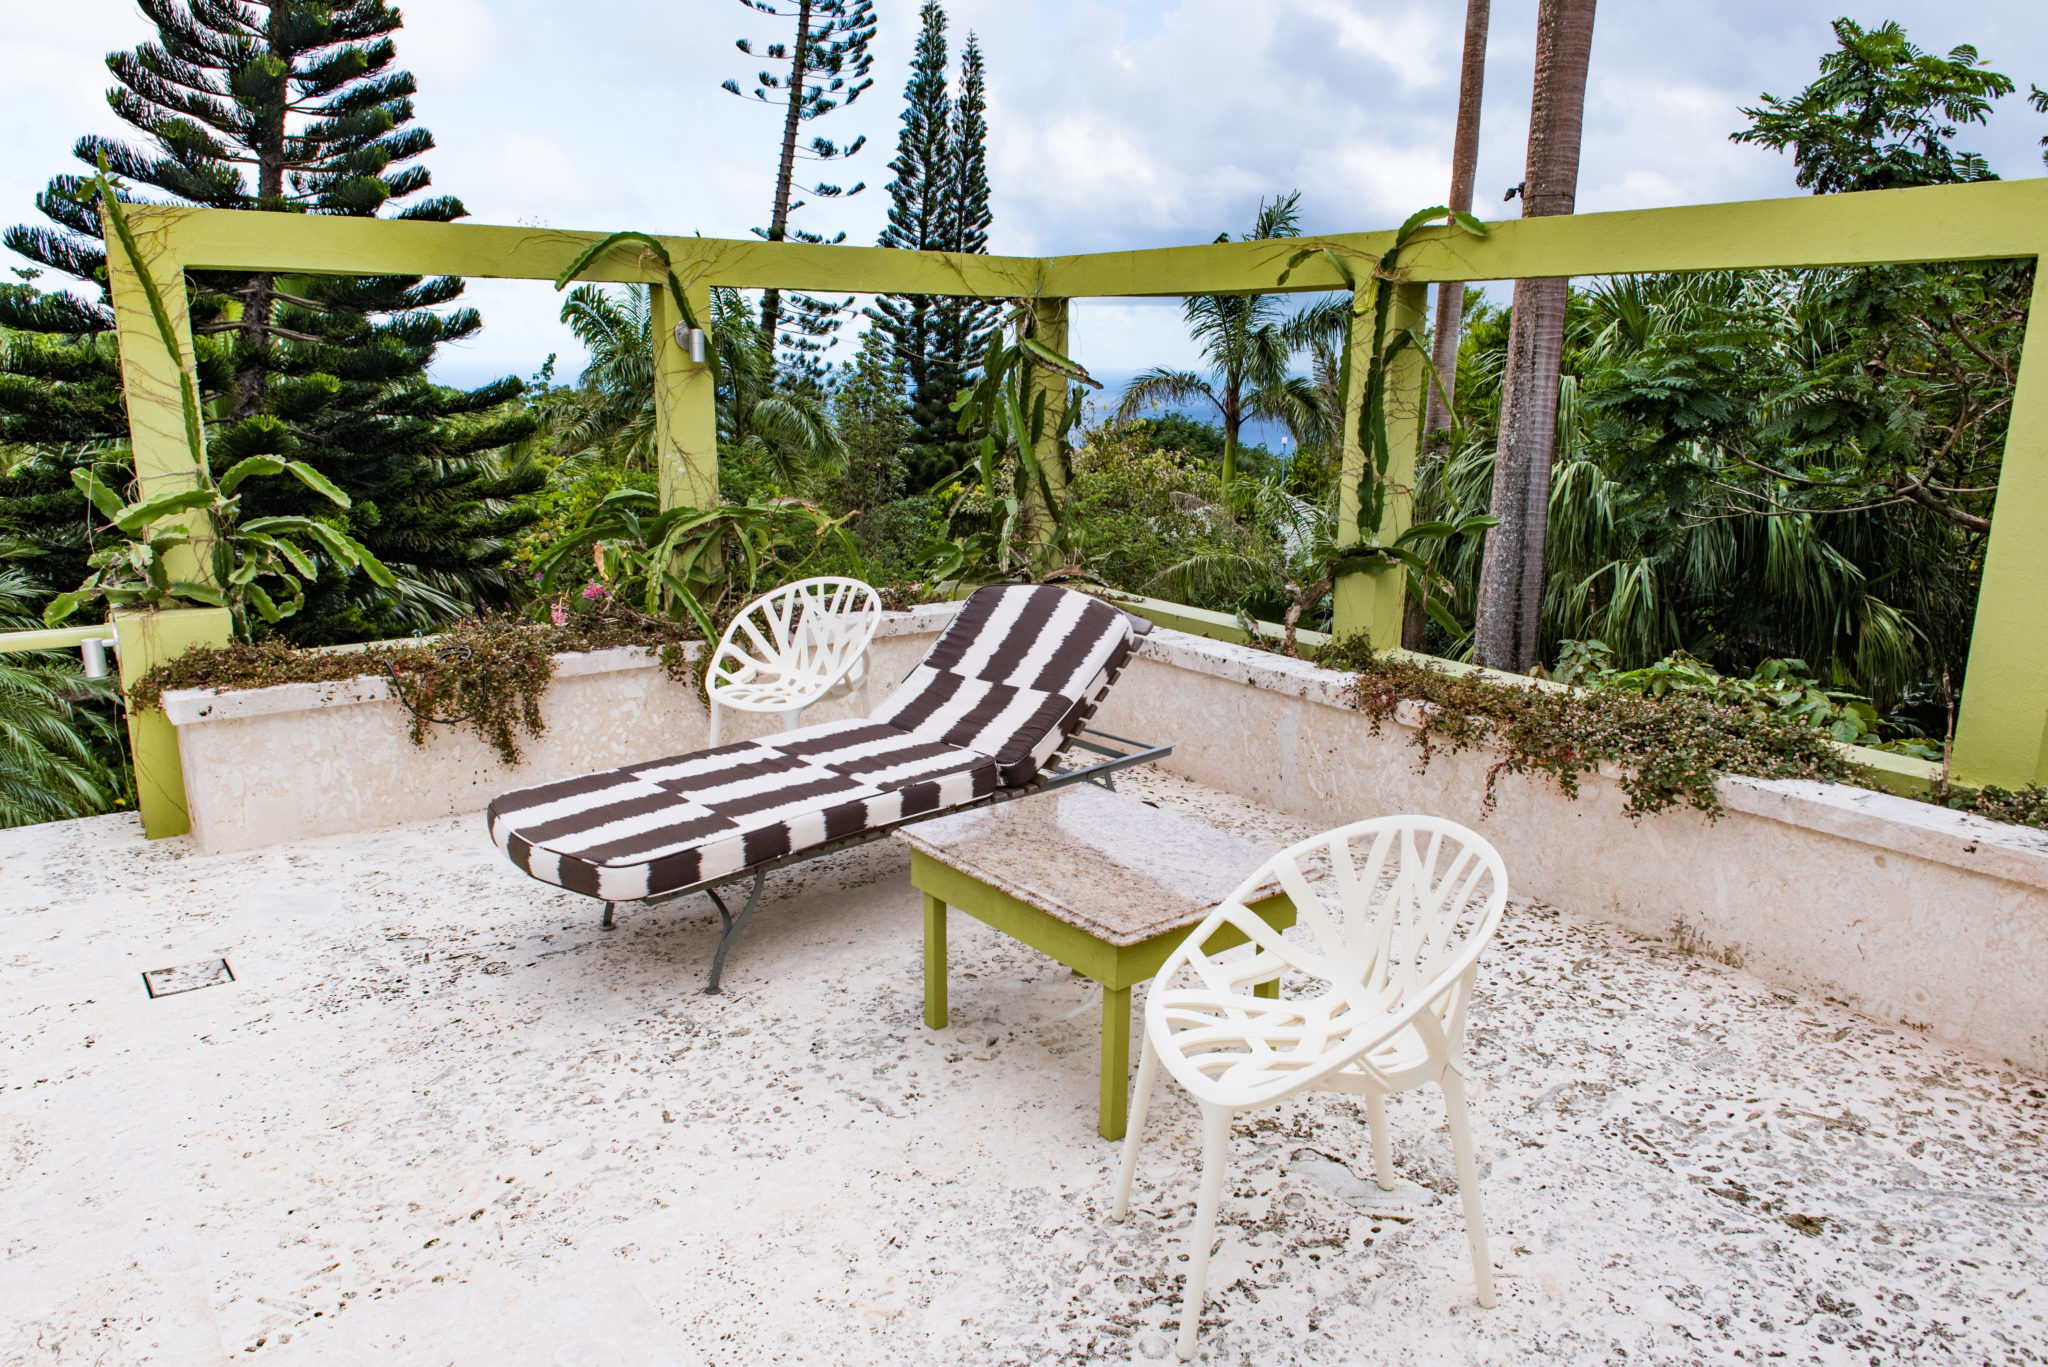 Golden Rock Inn Nevis: Soak In Romance and Natural Seclusion